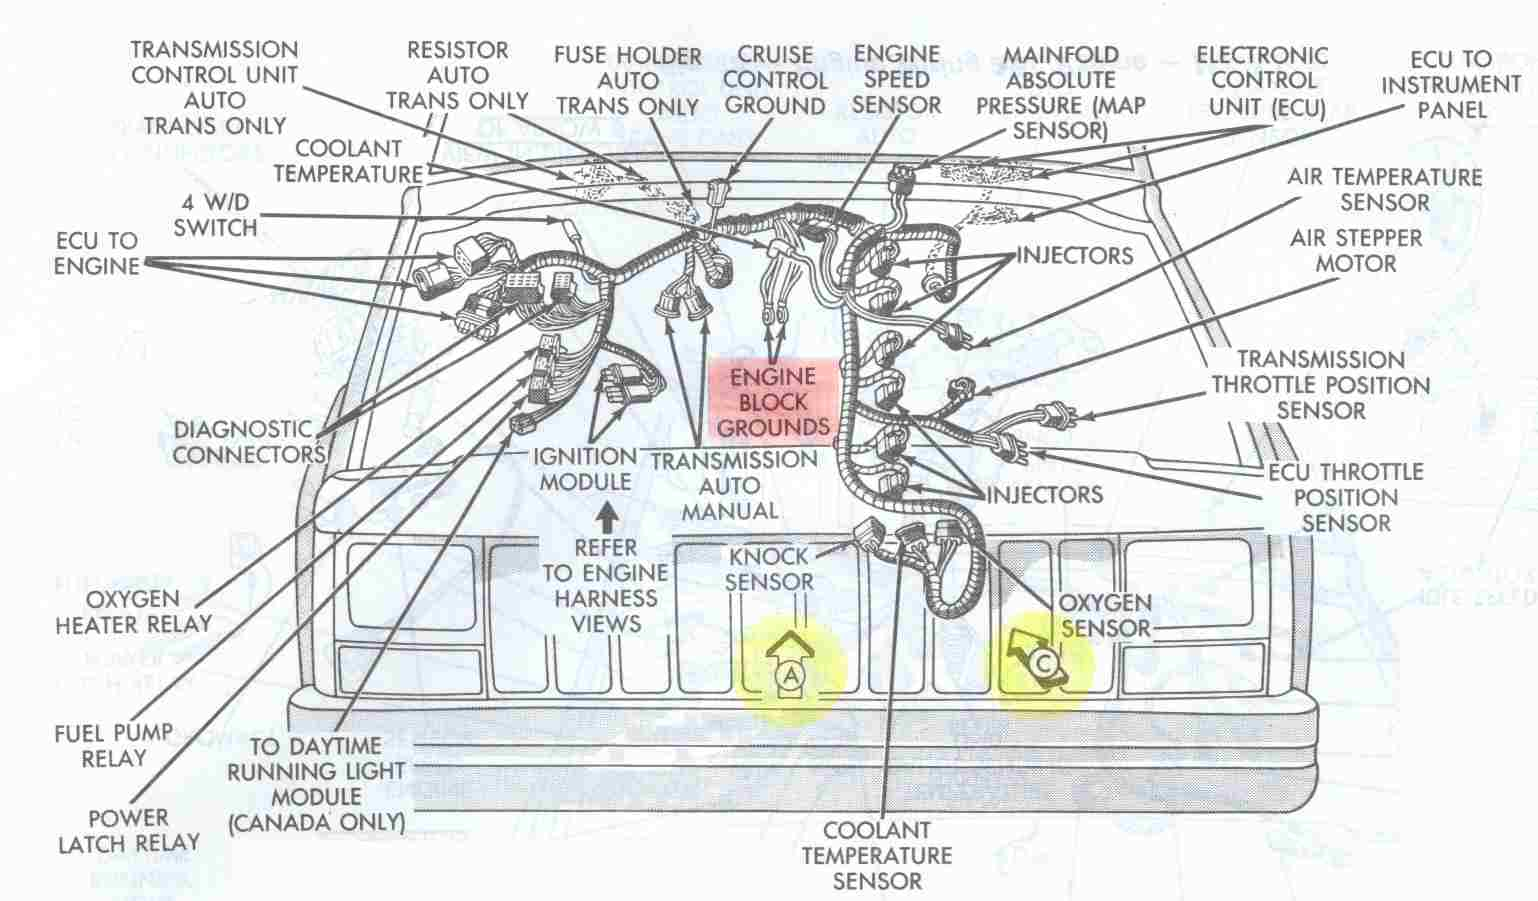 Electrical_Engine_Ground_Points_Overview jeep cherokee electrical diagnosing erratic behavior of engine wiring diagram for 1998 jeep grand cherokee at reclaimingppi.co